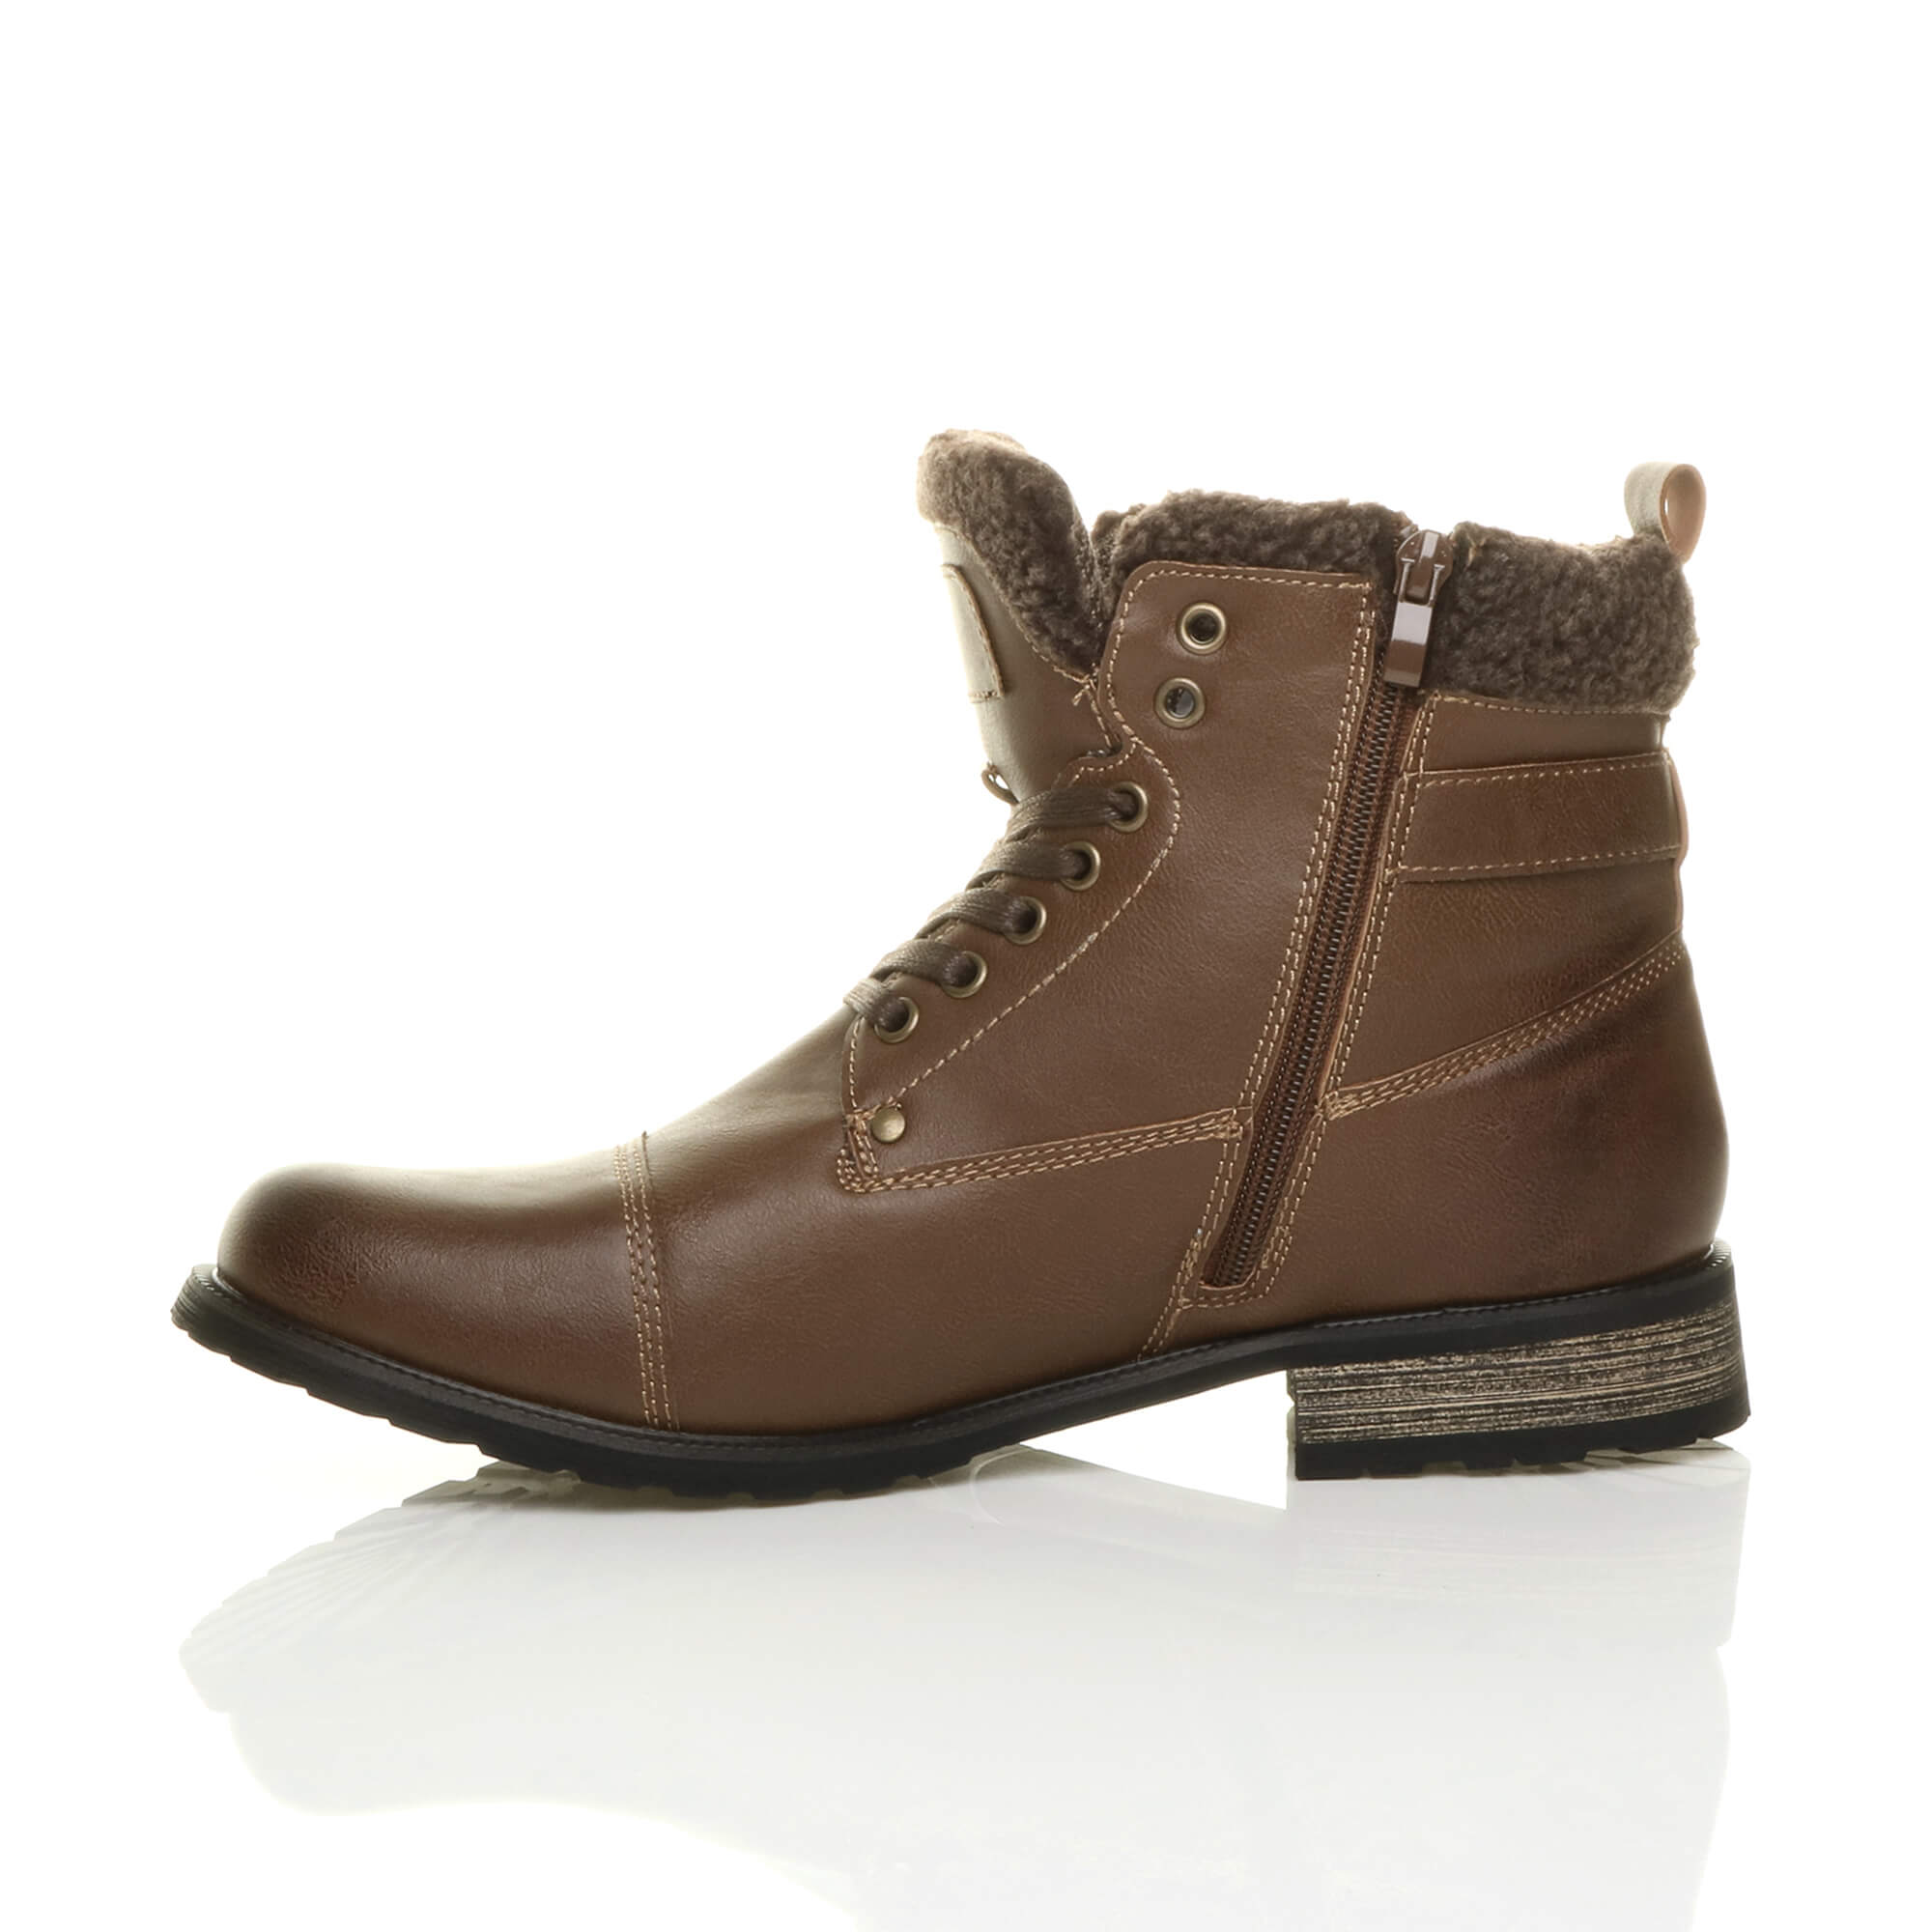 MENS-LACE-UP-ZIP-FUR-TRIM-SMART-WORK-WINTER-ARMY-MILITARY-BIKER-ANKLE-BOOTS-SIZE thumbnail 12